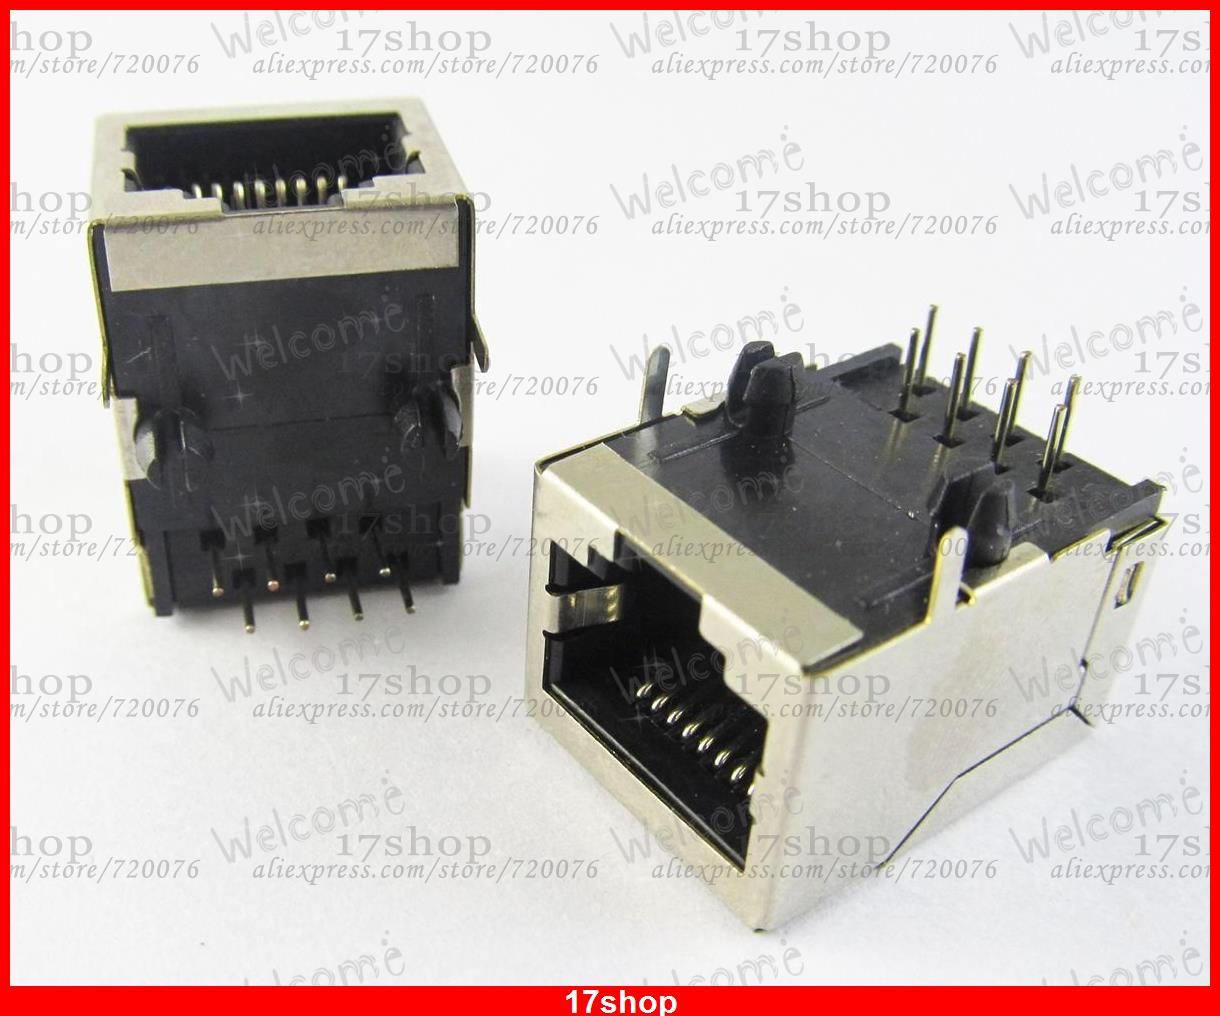 Famous Cat5 Modular Plug Wiring Photos - The Wire - magnox.info